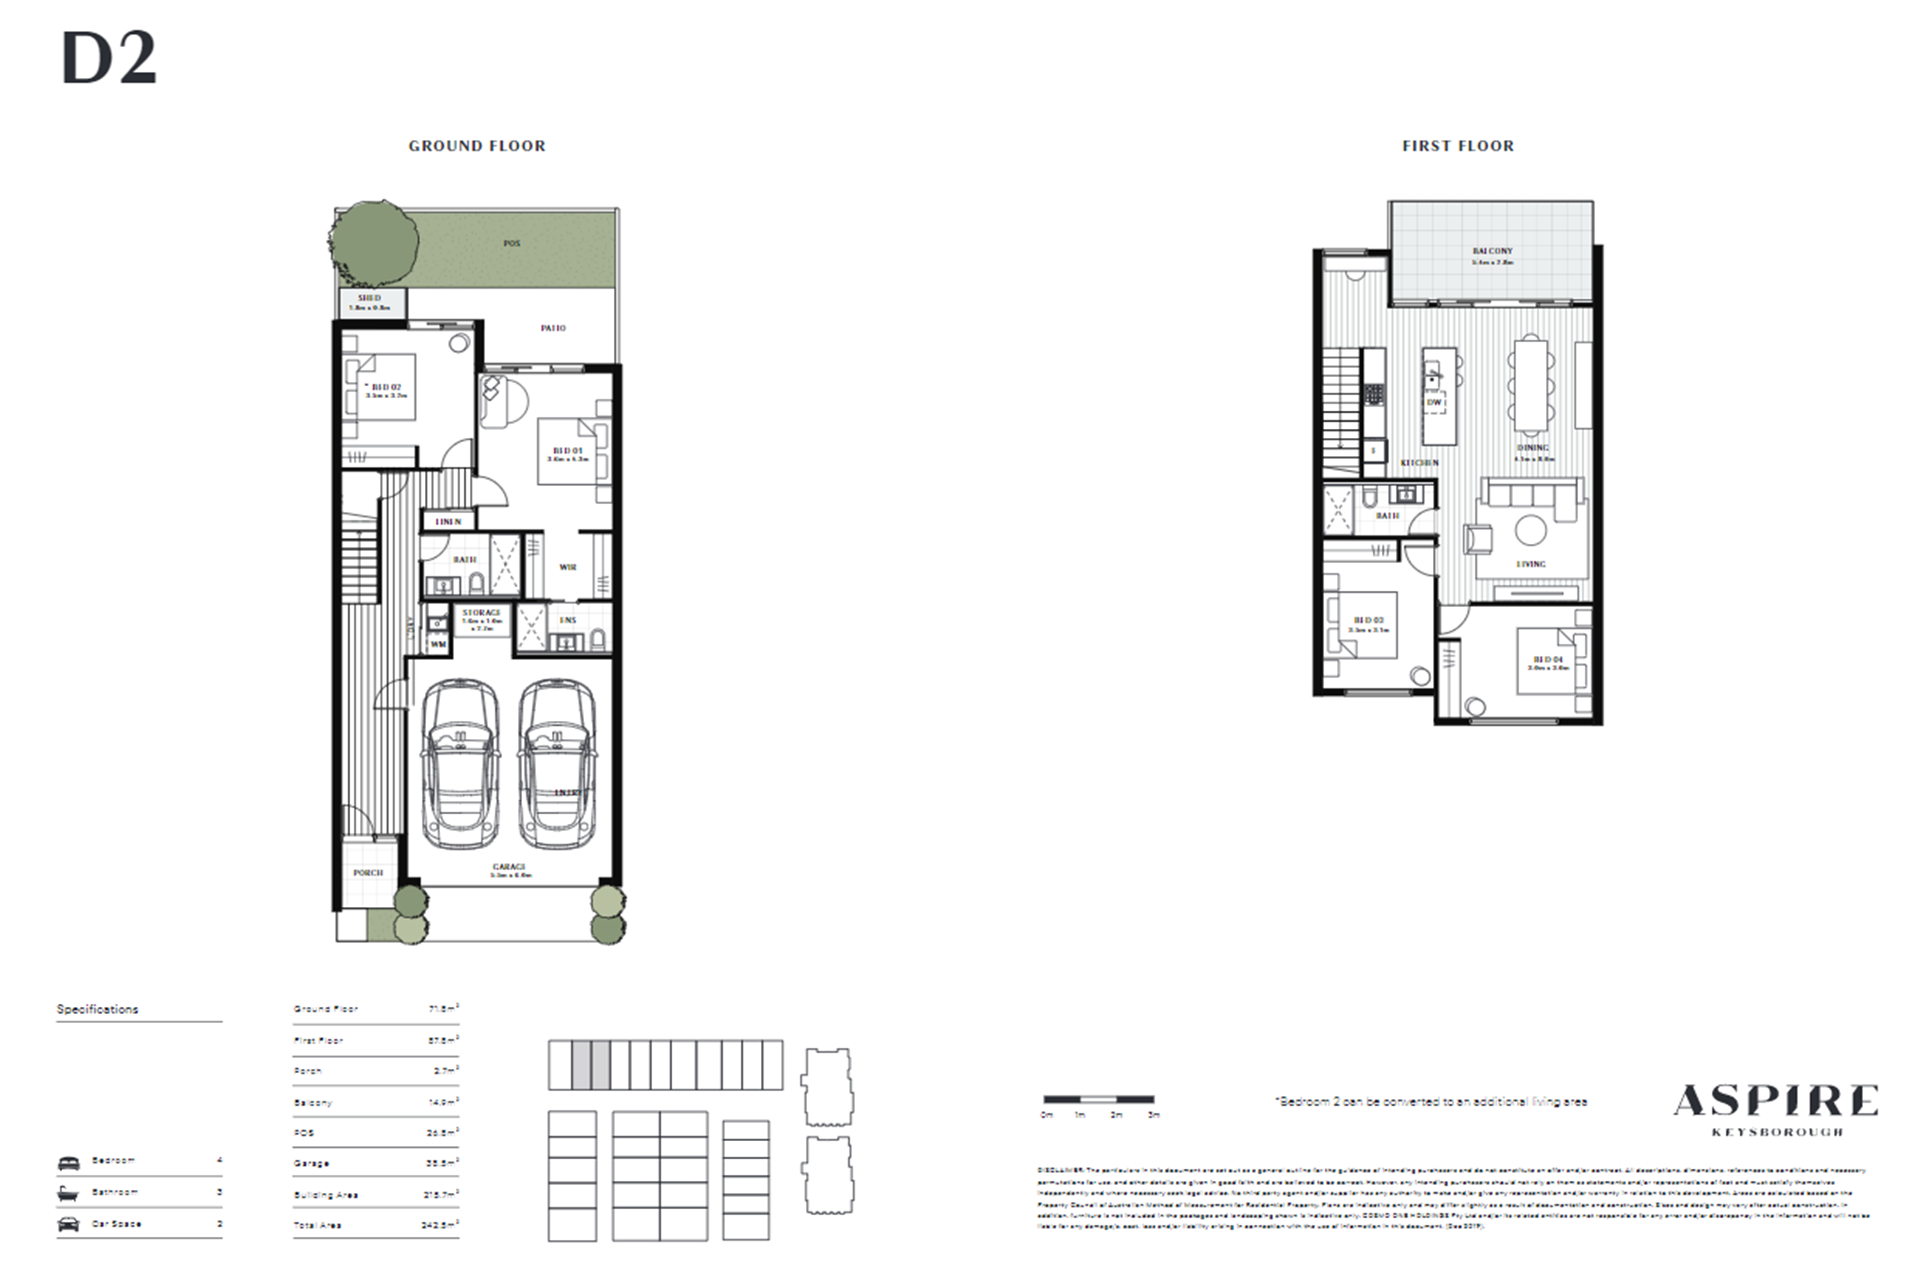 Aspire   D2 Floor Plan (Townhouse)